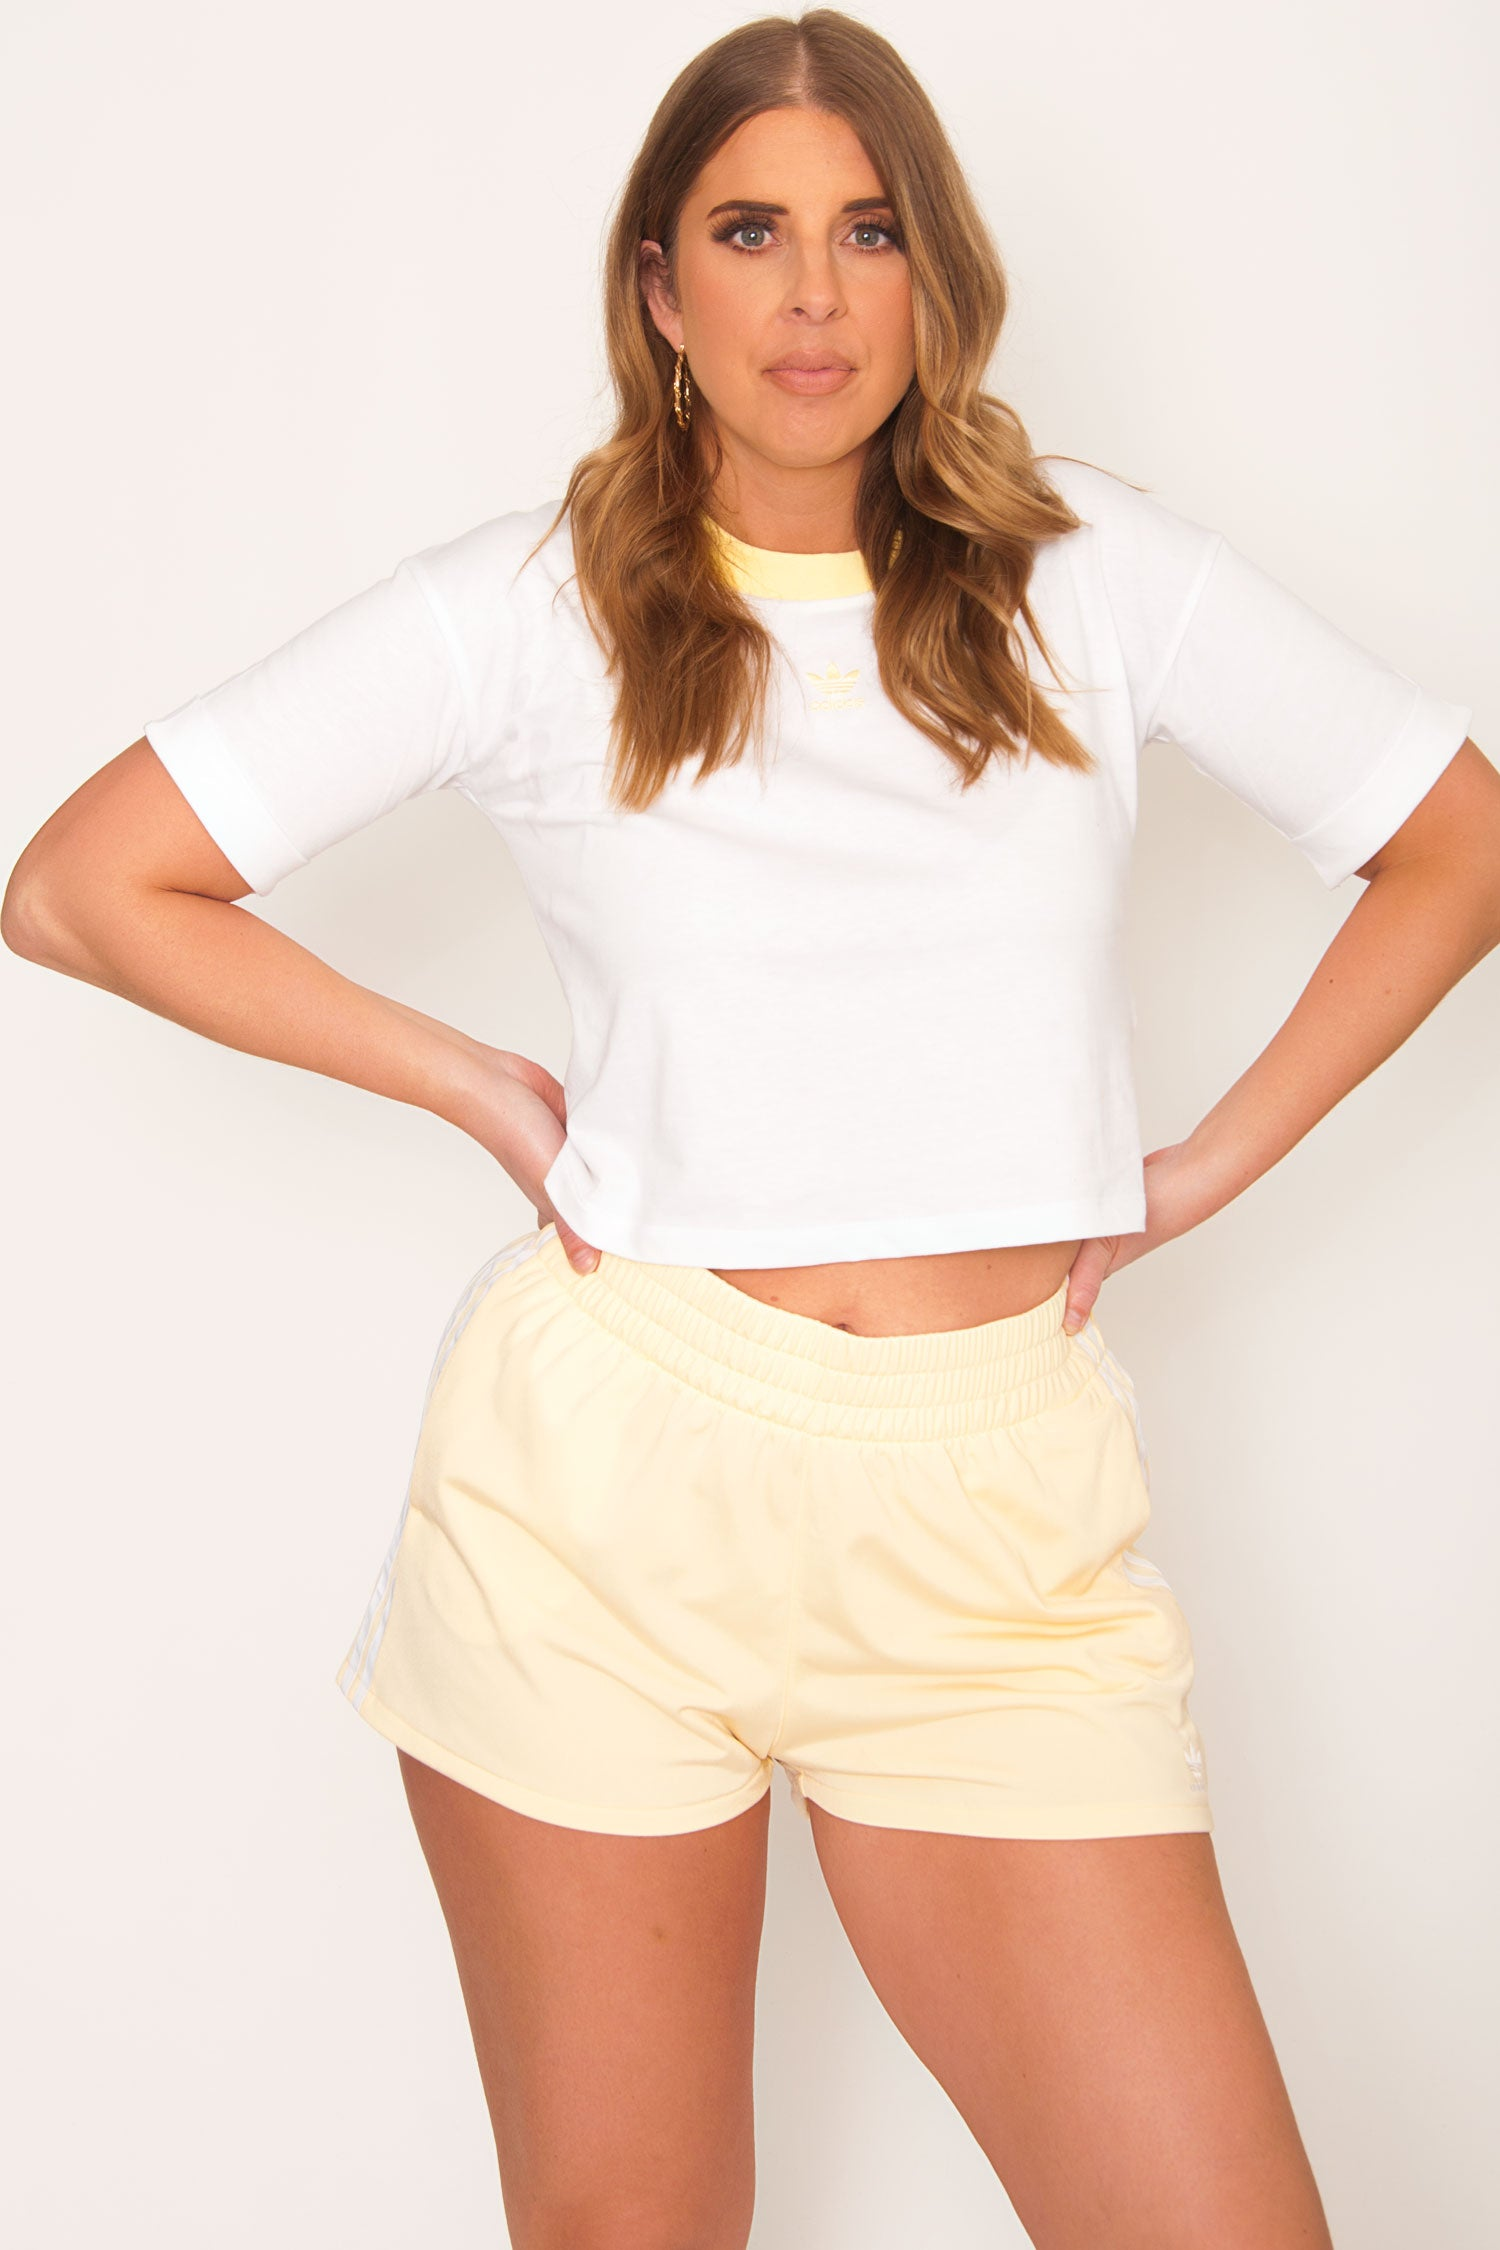 PRE-ORDER Adidas Originals Cropped Tee - White/Yellow